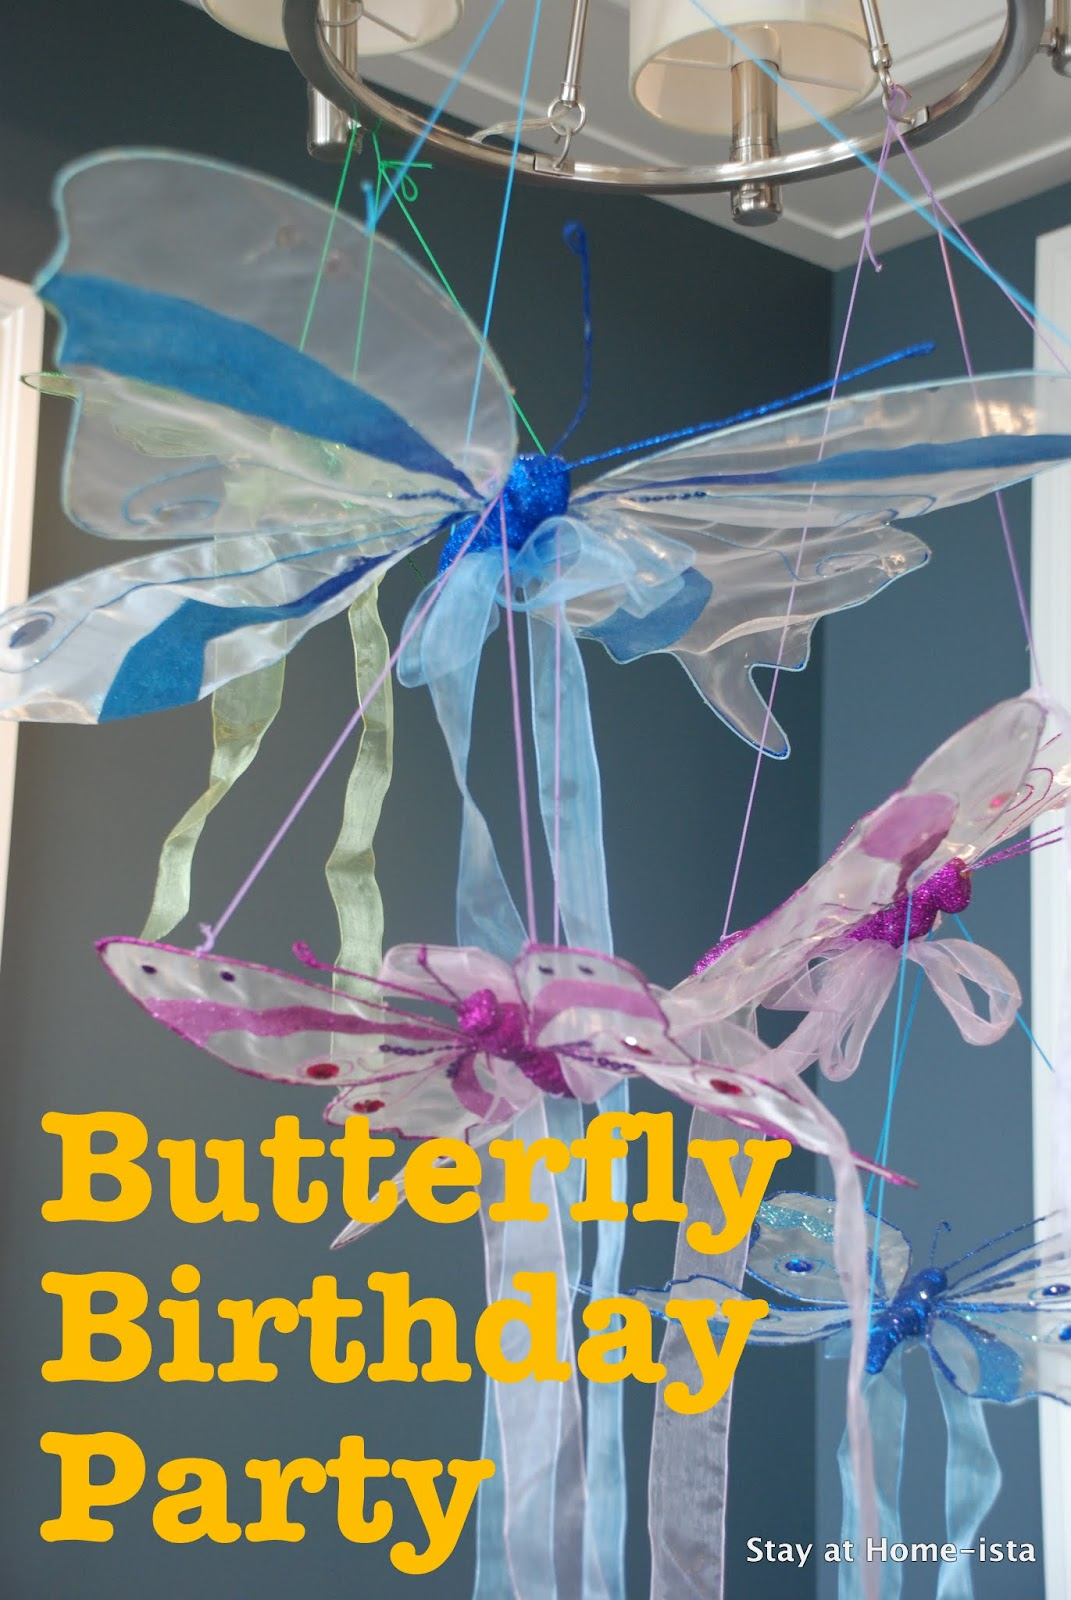 Butterfly Birthday Party With Hanging Decorations